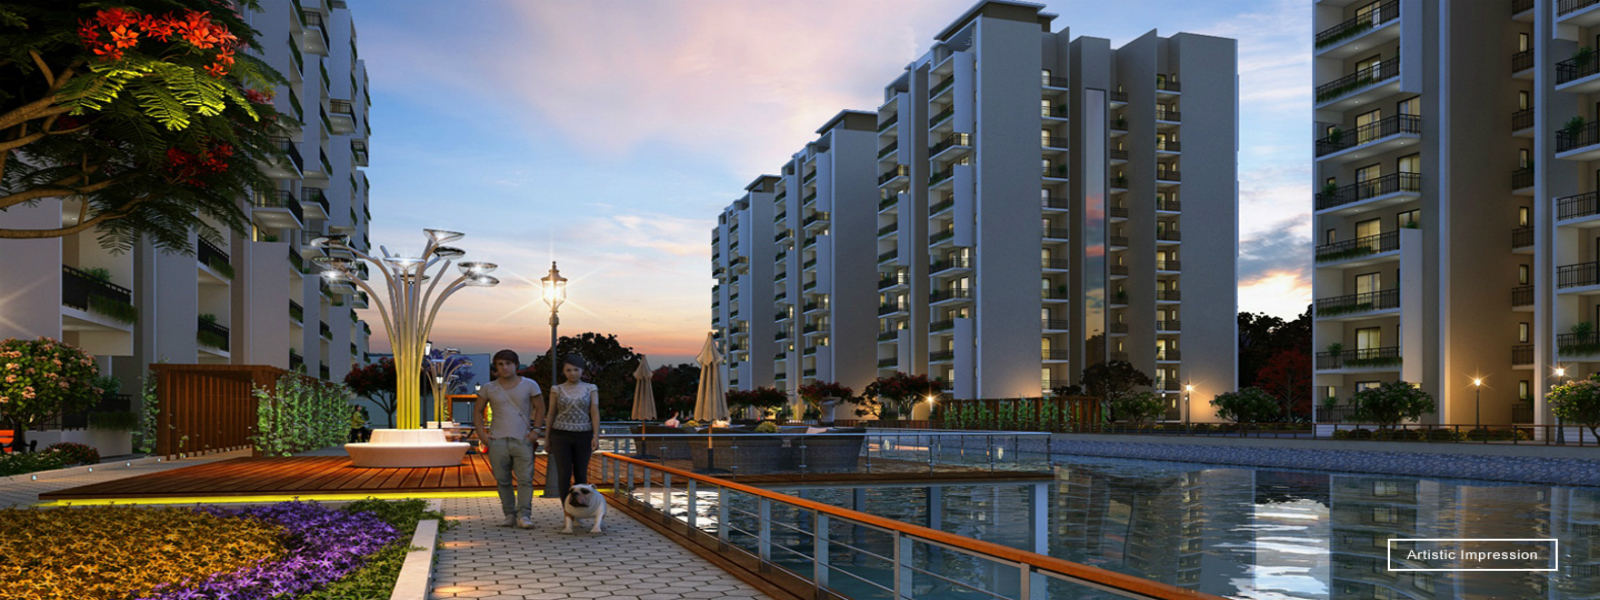 LakeFront Towers Gurgaon